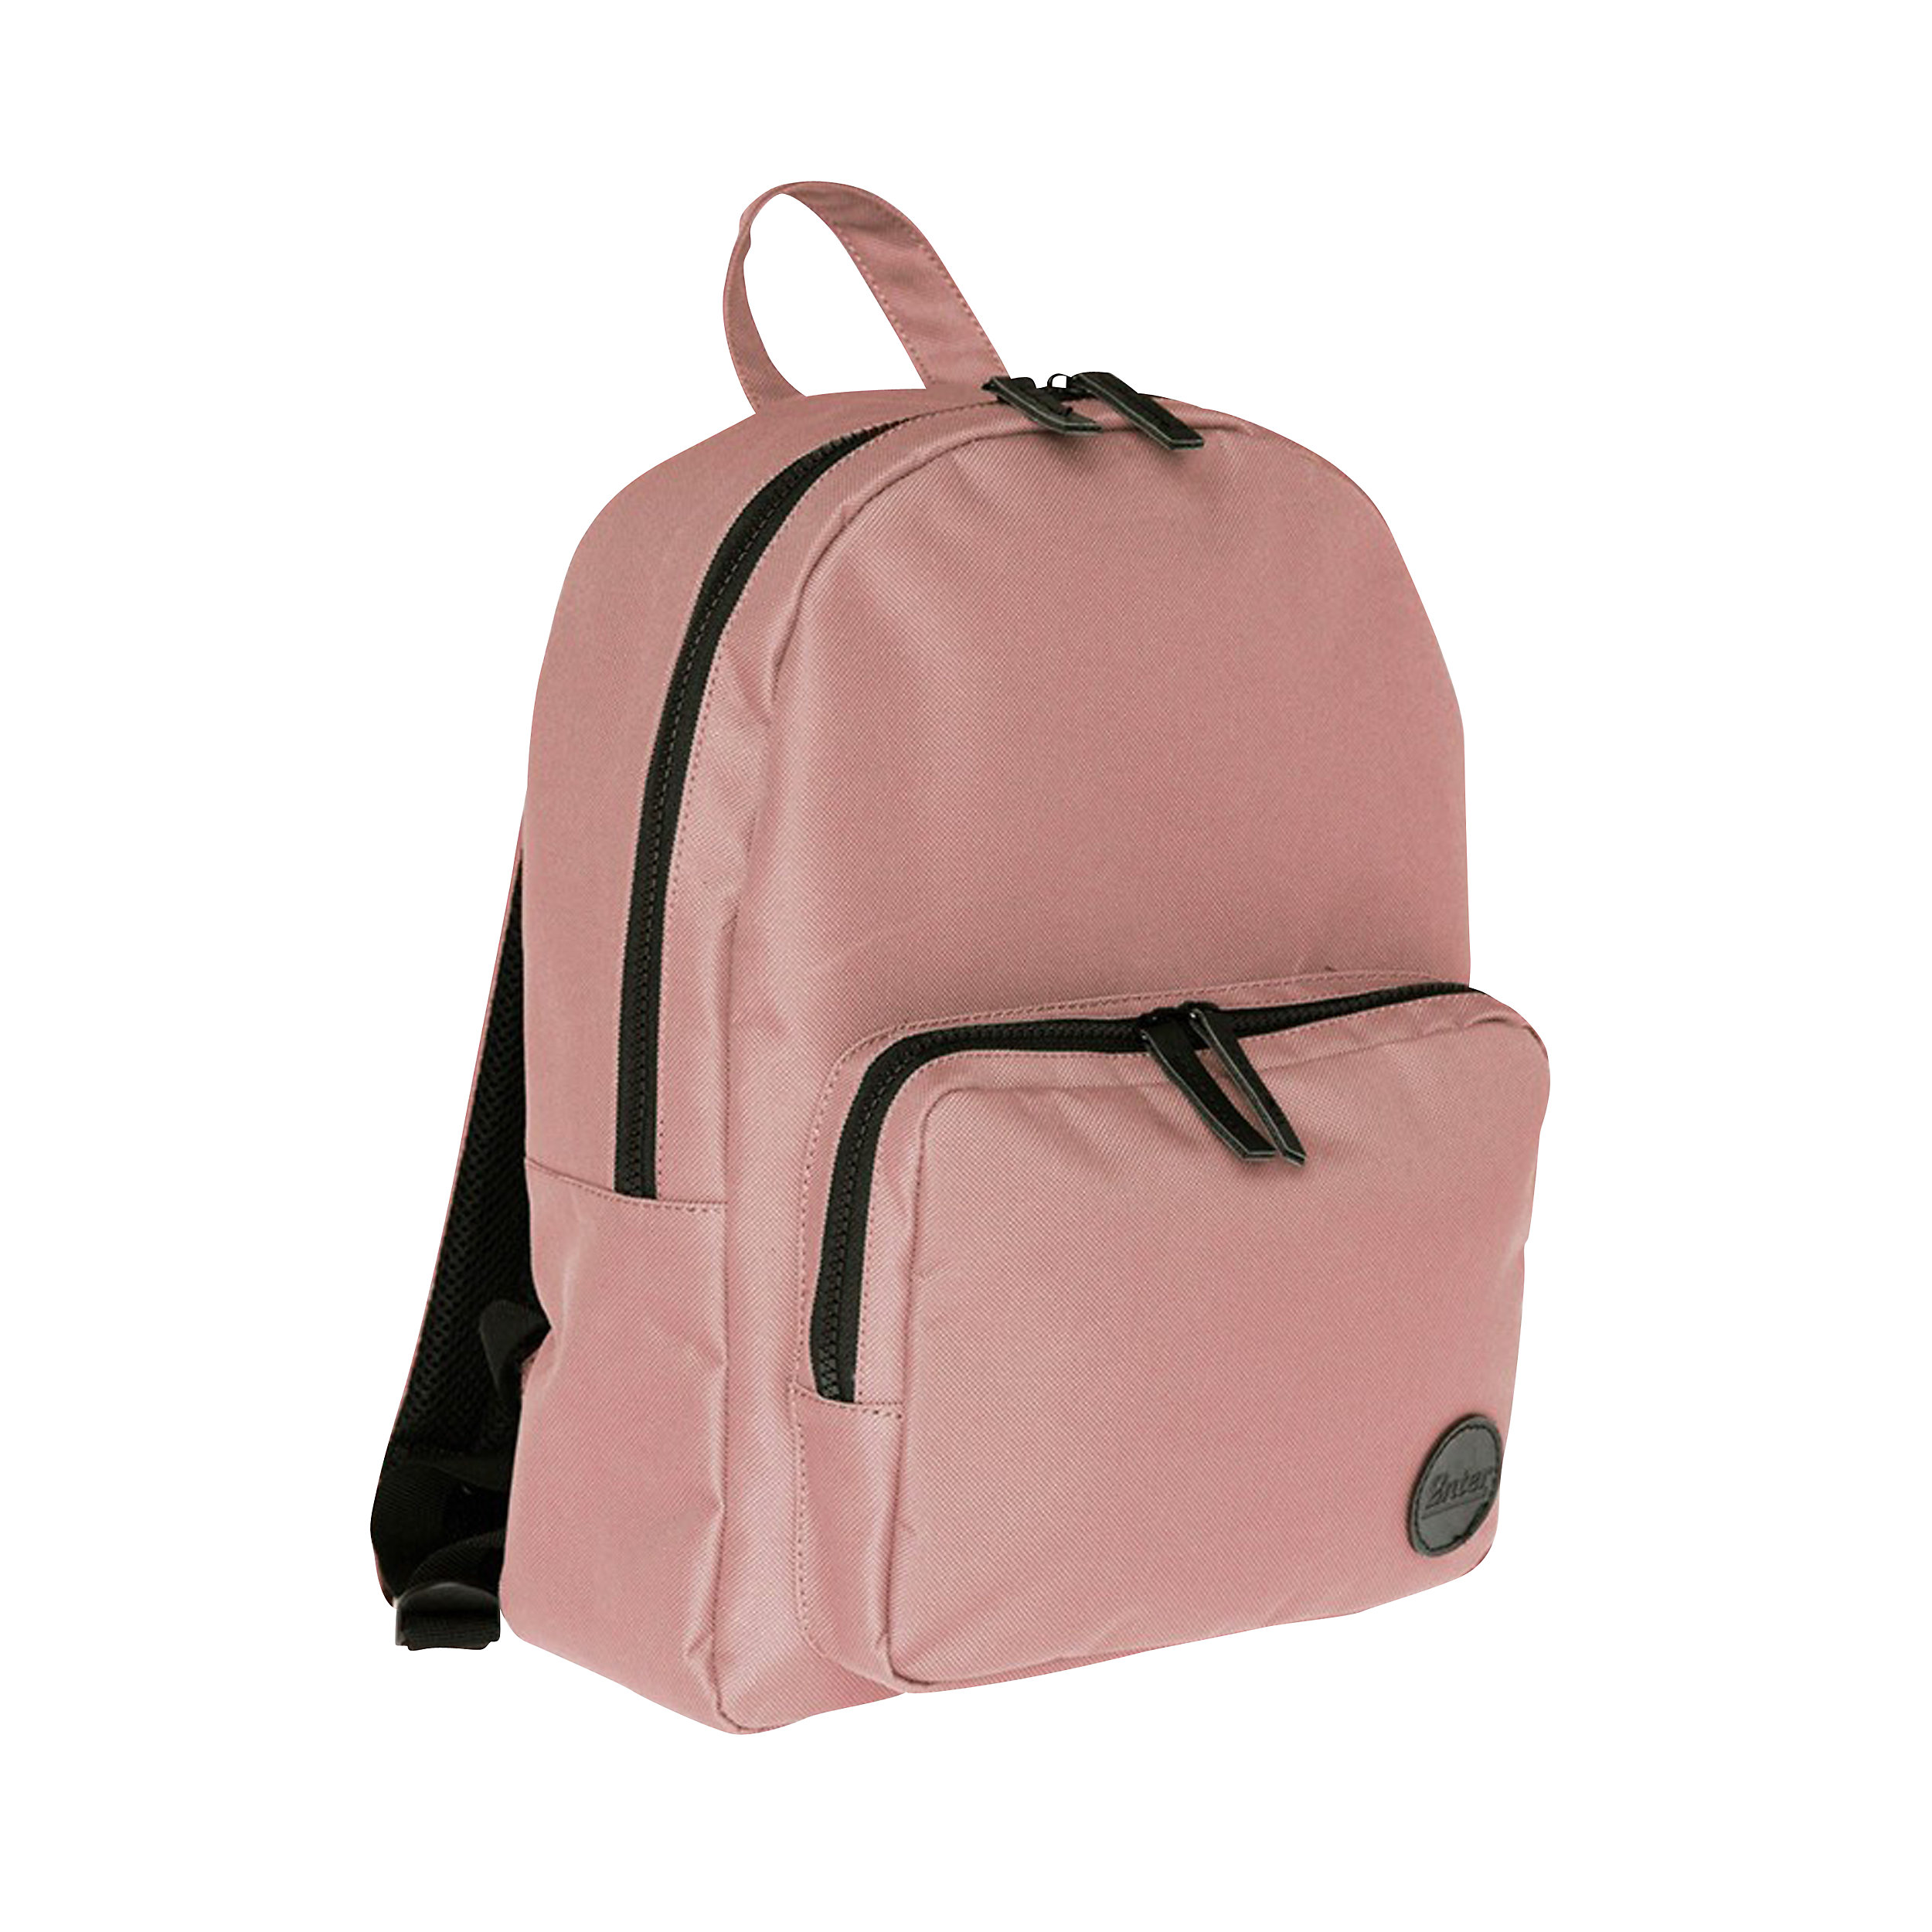 Rucksack LS Gym Backpack Mini Lifestyle Collection 8 Liter